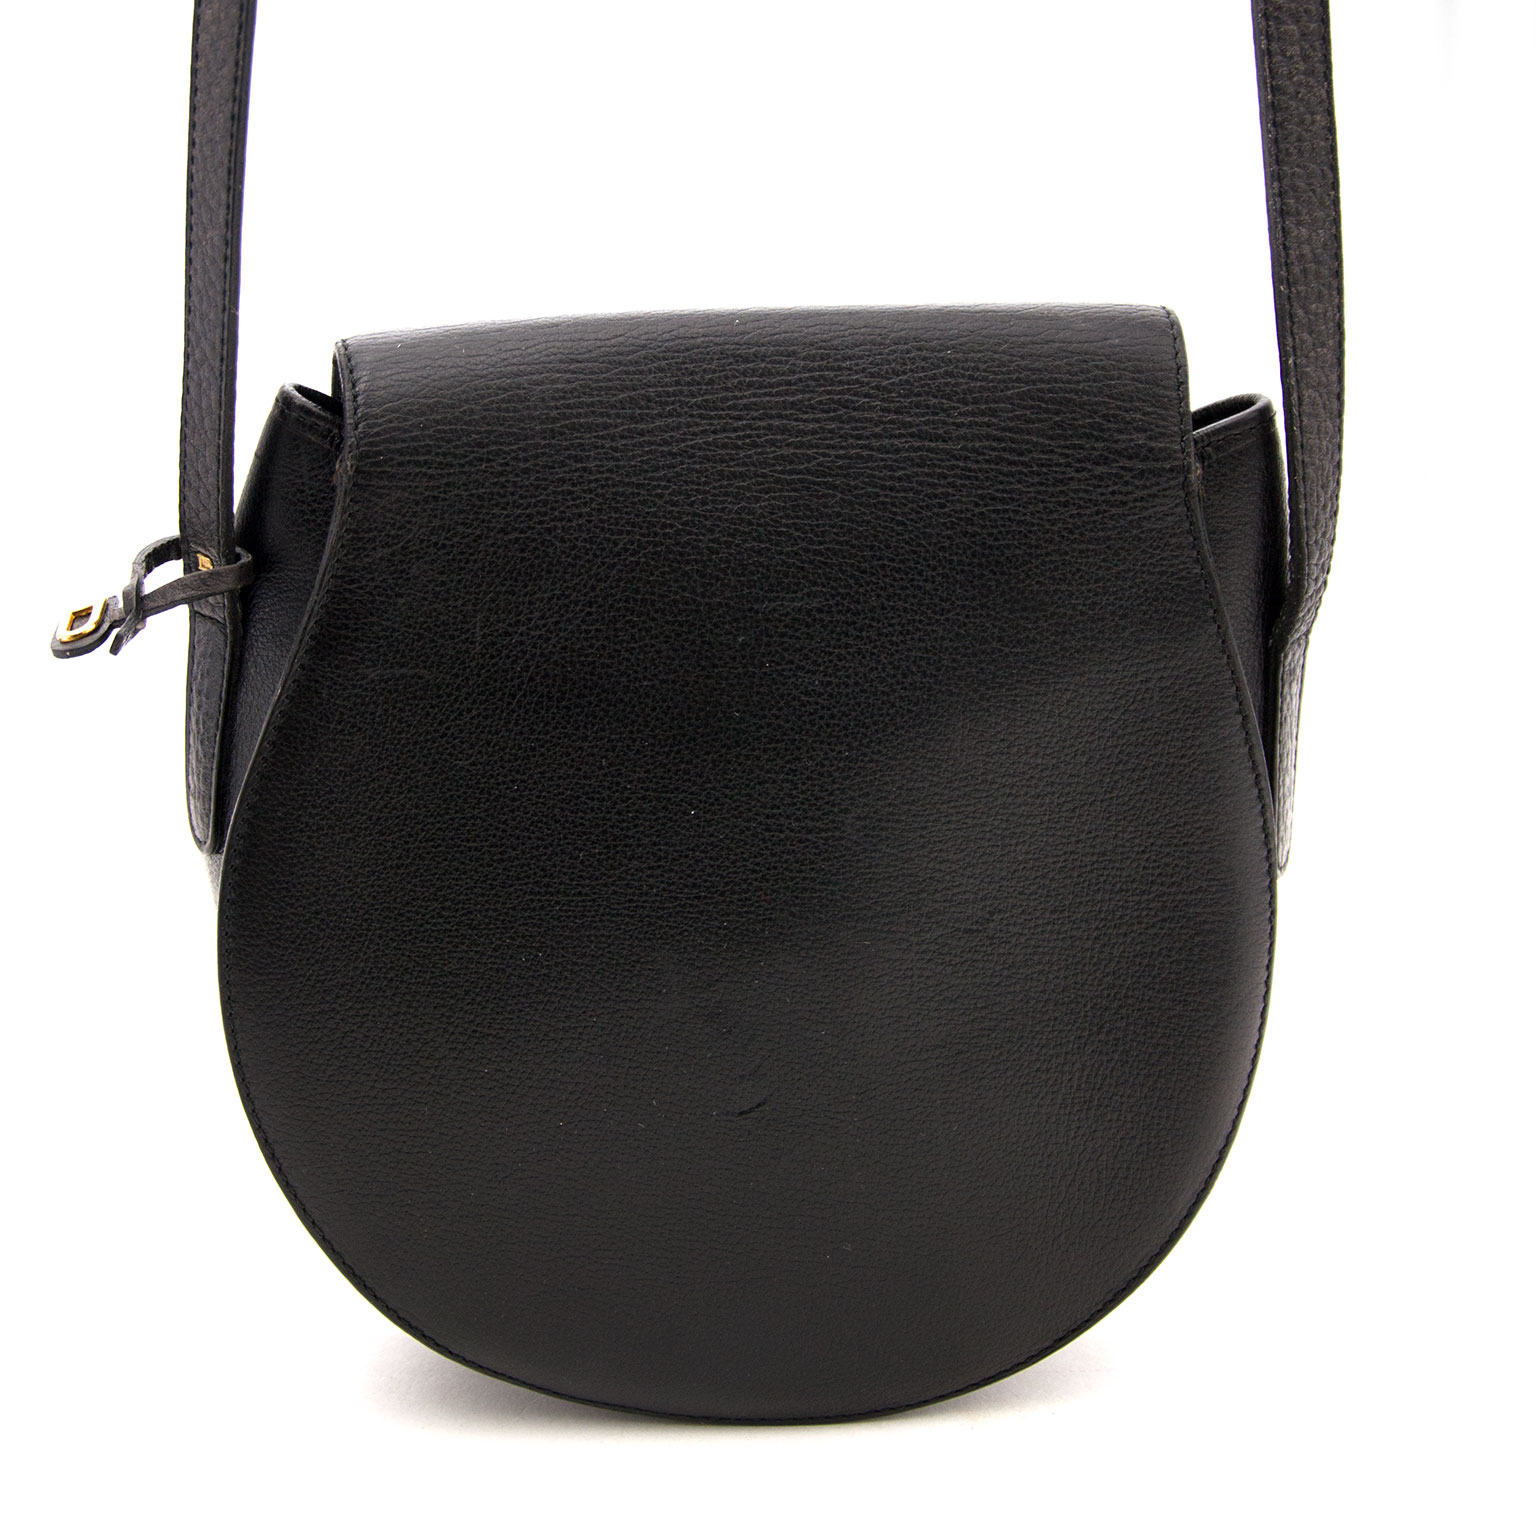 Delvaux Black Cross Body Bag available at Labellov showroom in Antwerp.